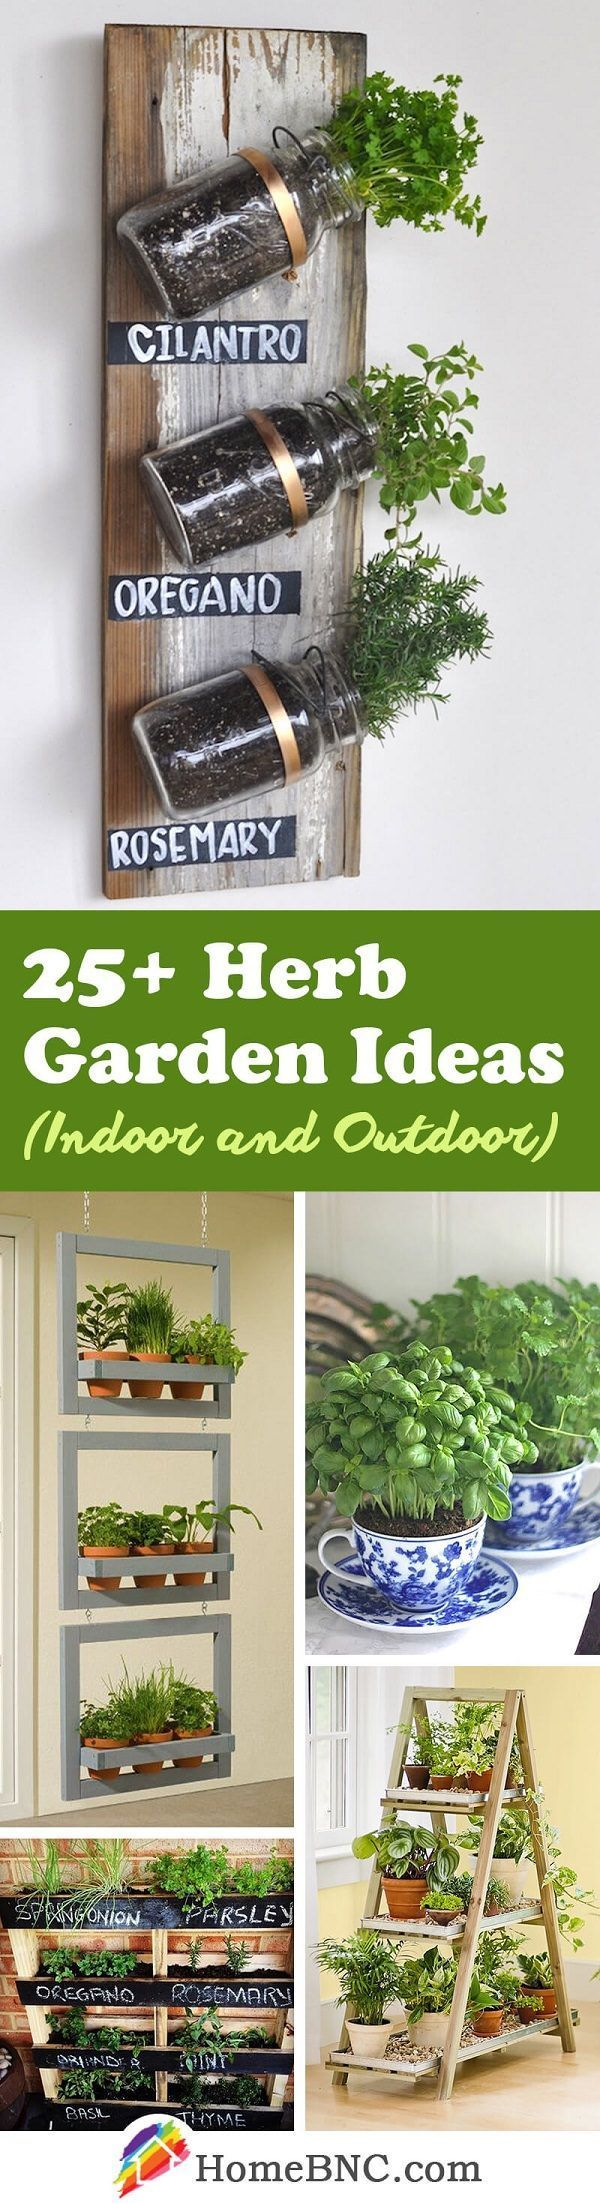 These 25 Herb Garden Ideas for Indoors